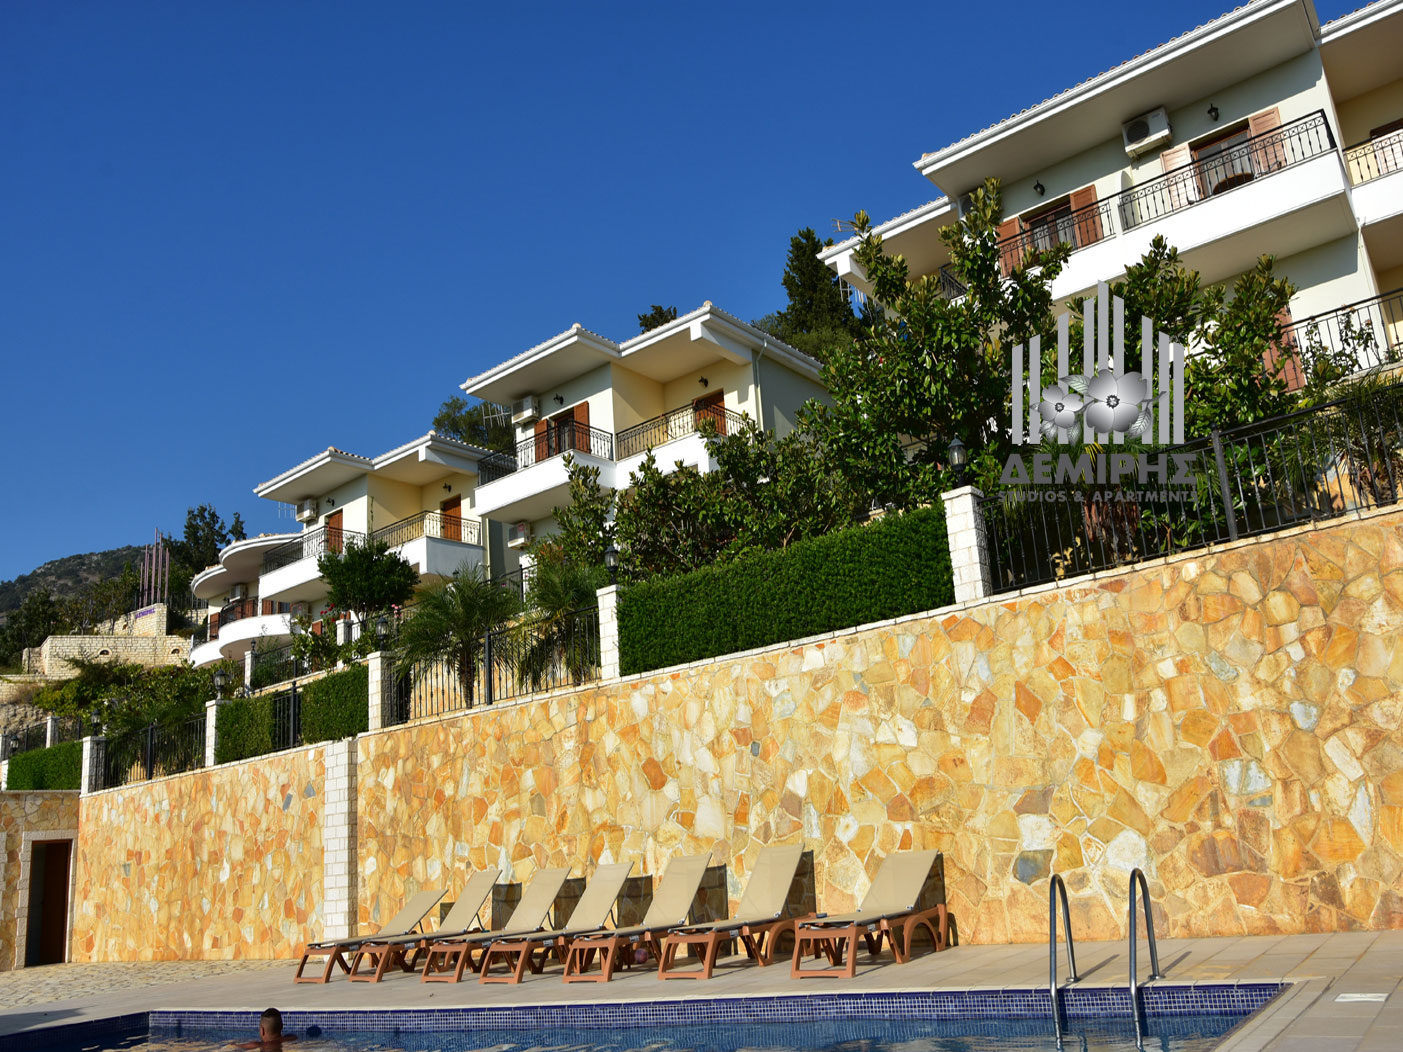 <em>Demiris Hotel <br /> Sivota - Greece</em>